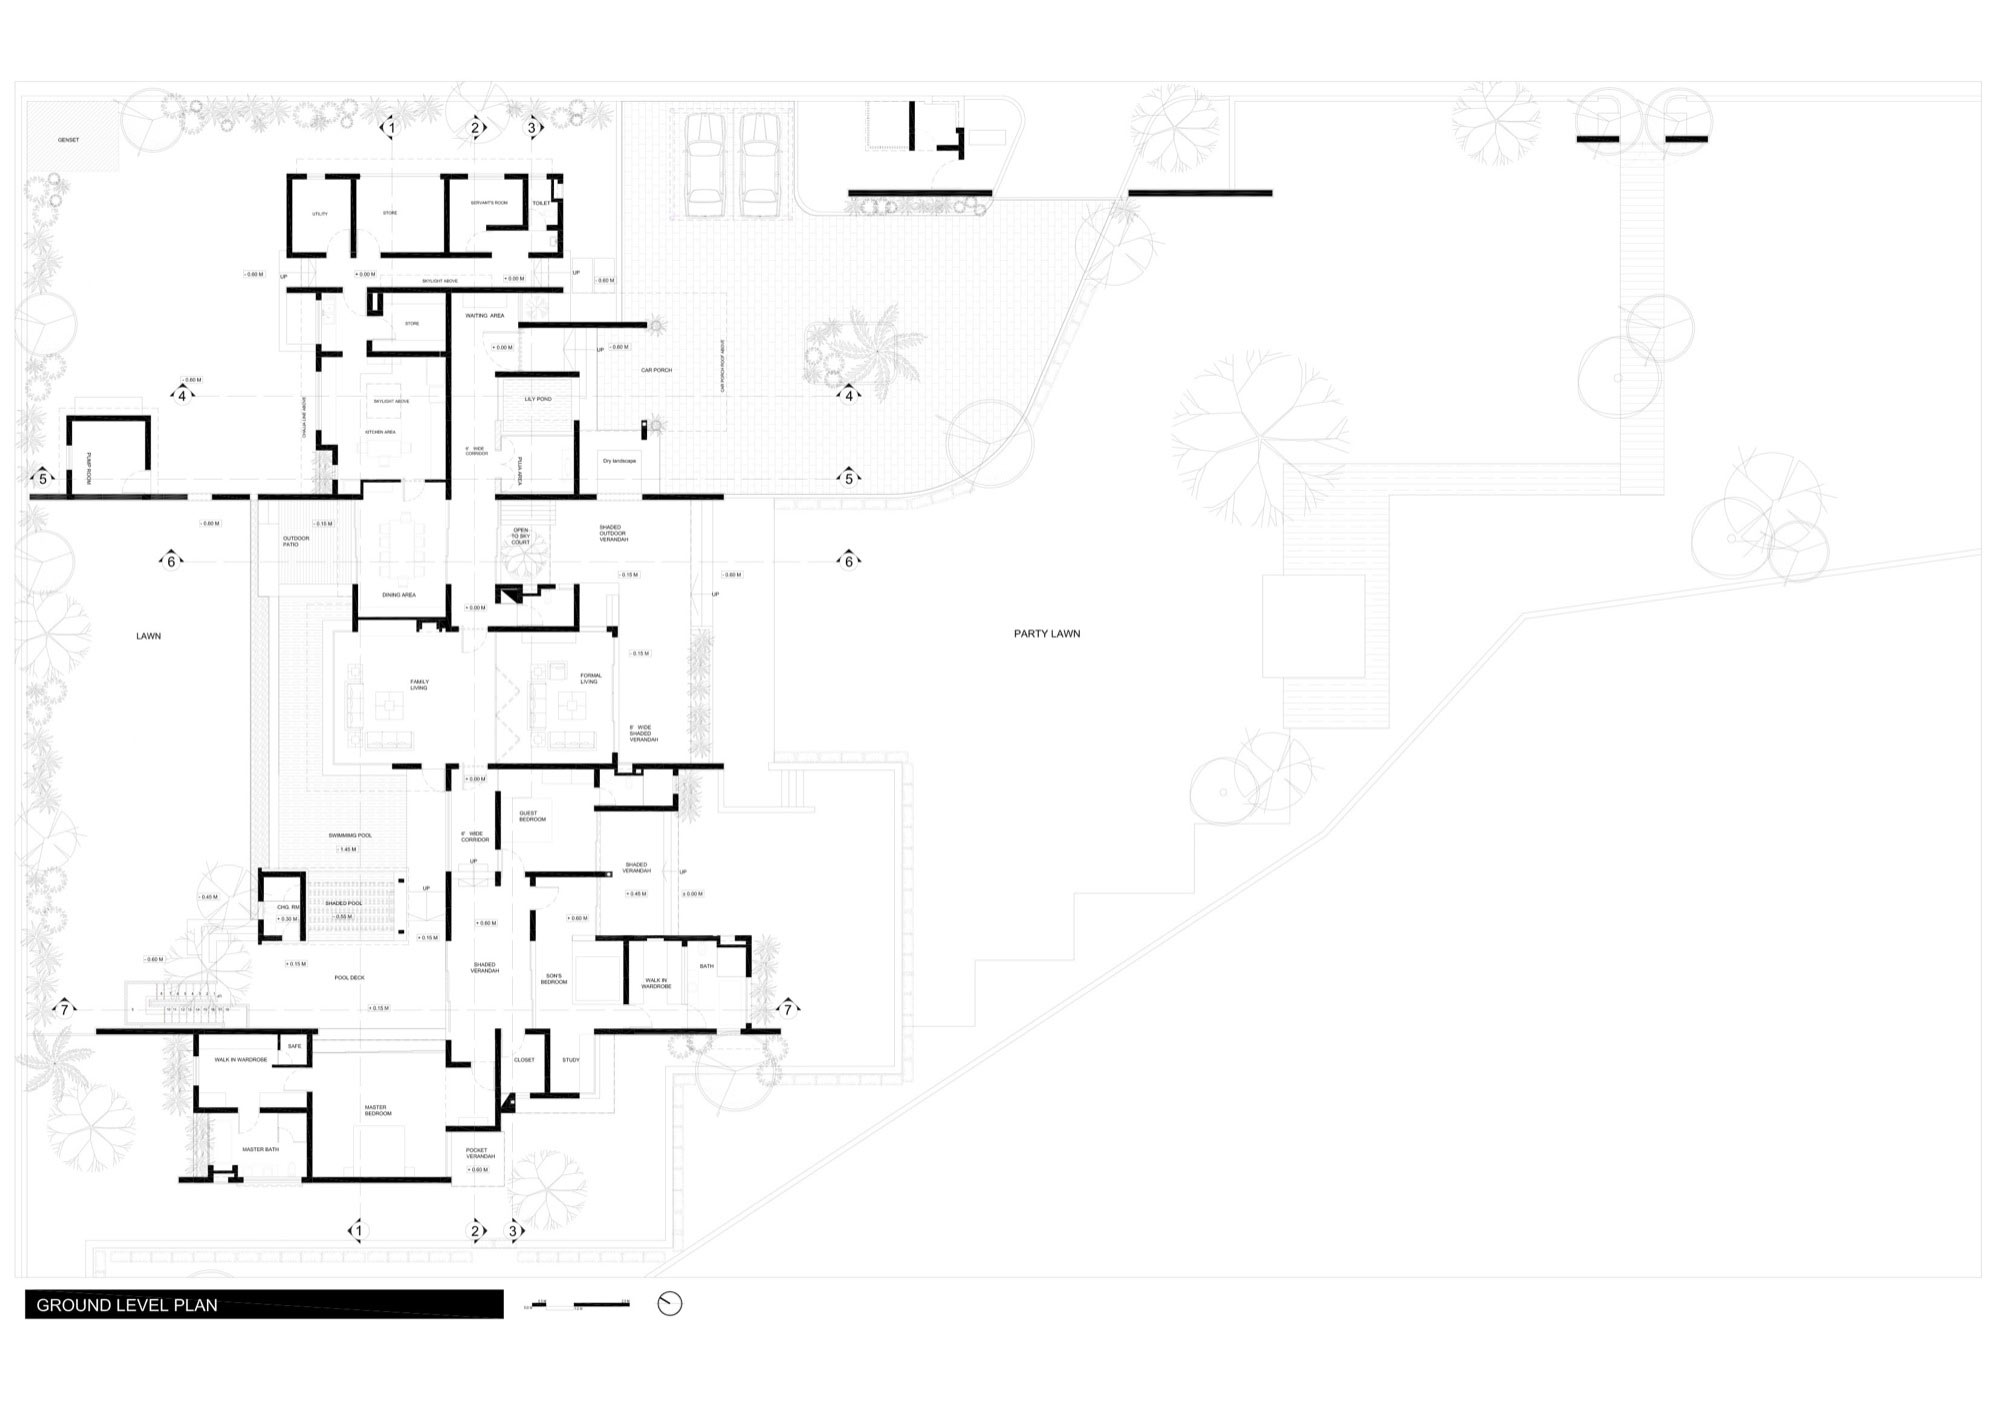 Bungalow-Baroda-India-Ground-Level-Floor-Plan French Christmas Tree